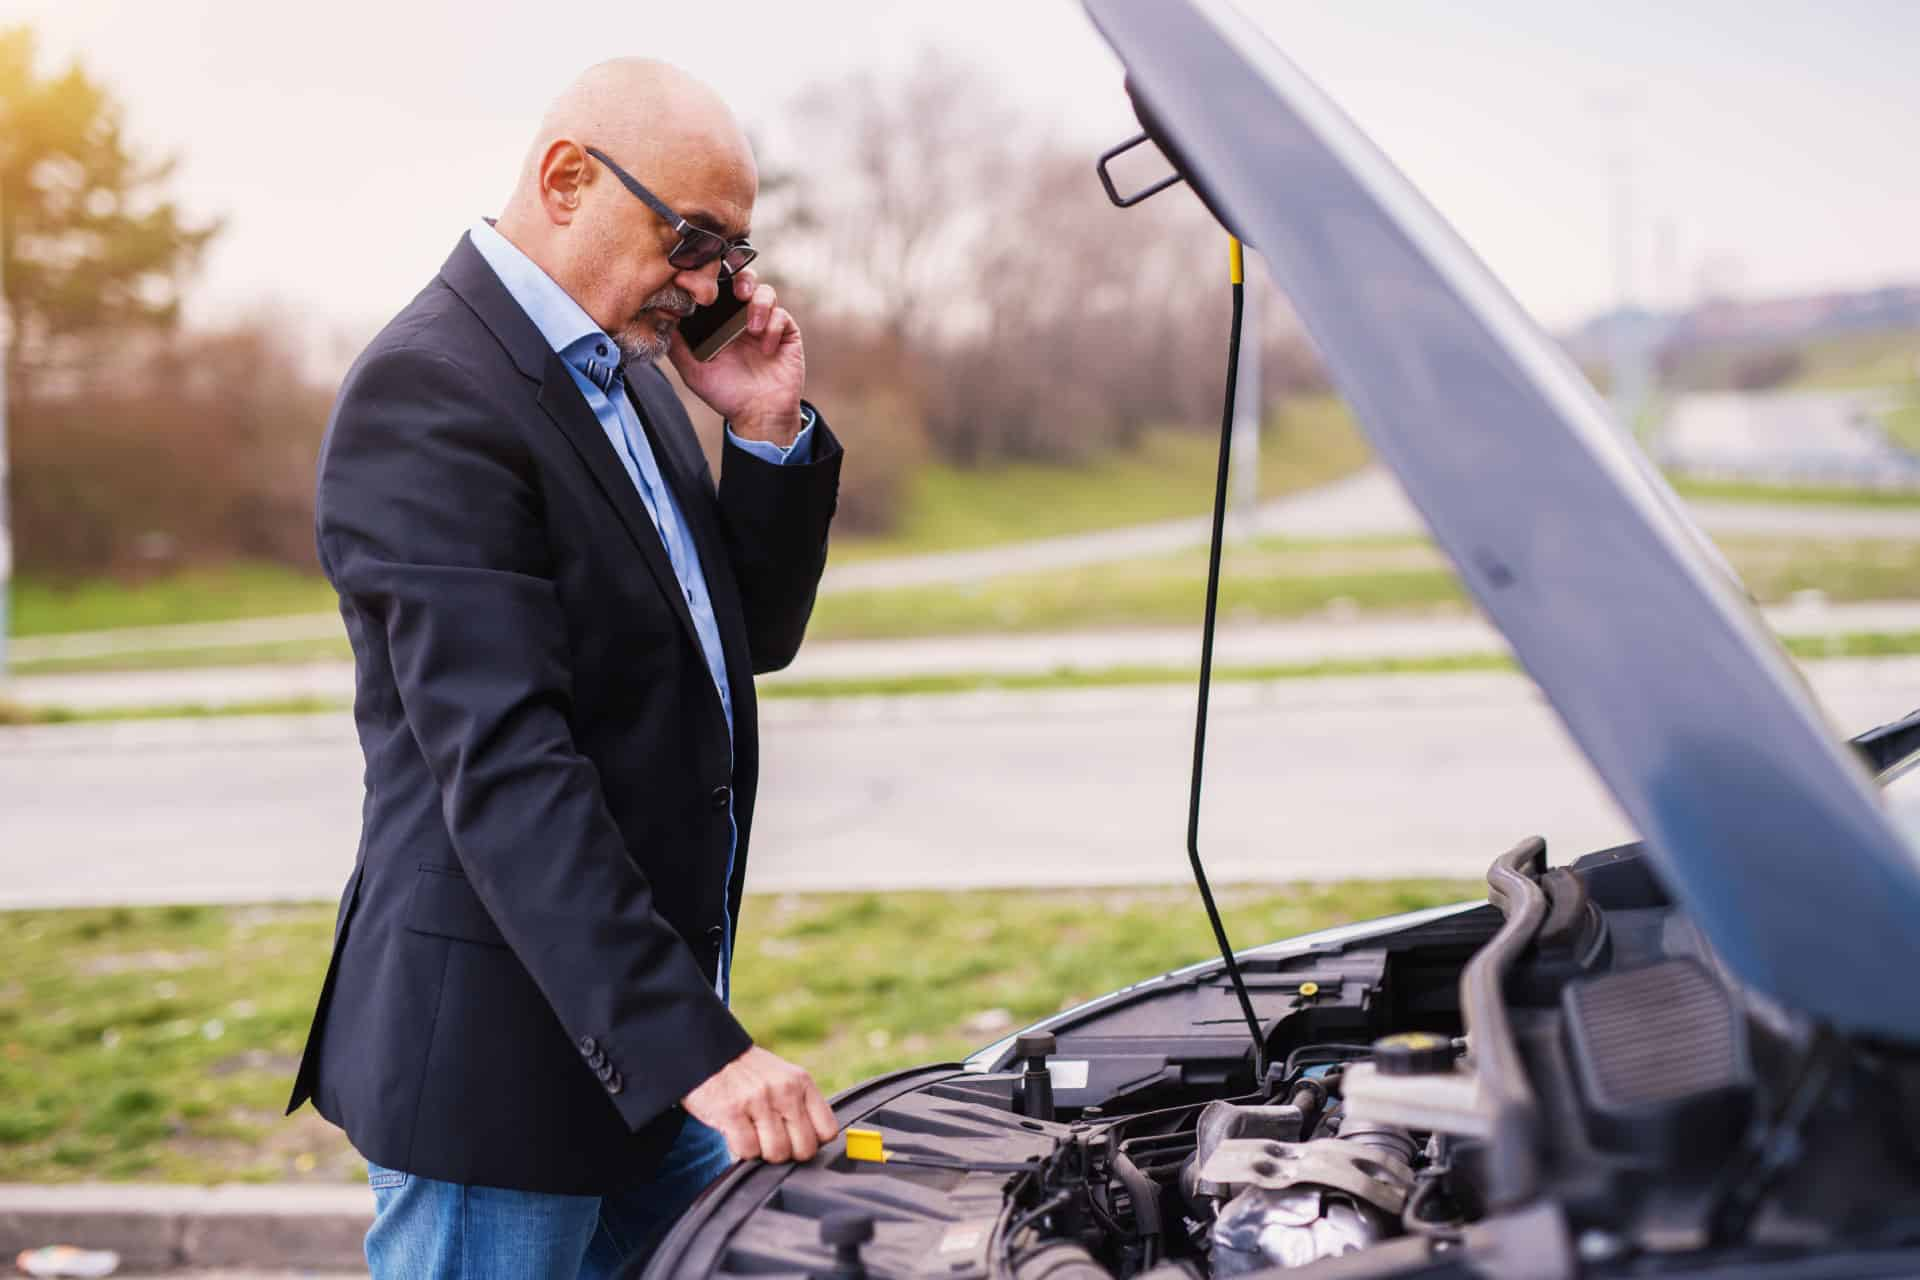 contact-Emergency-Towing-Service-in-Boerne-Tx